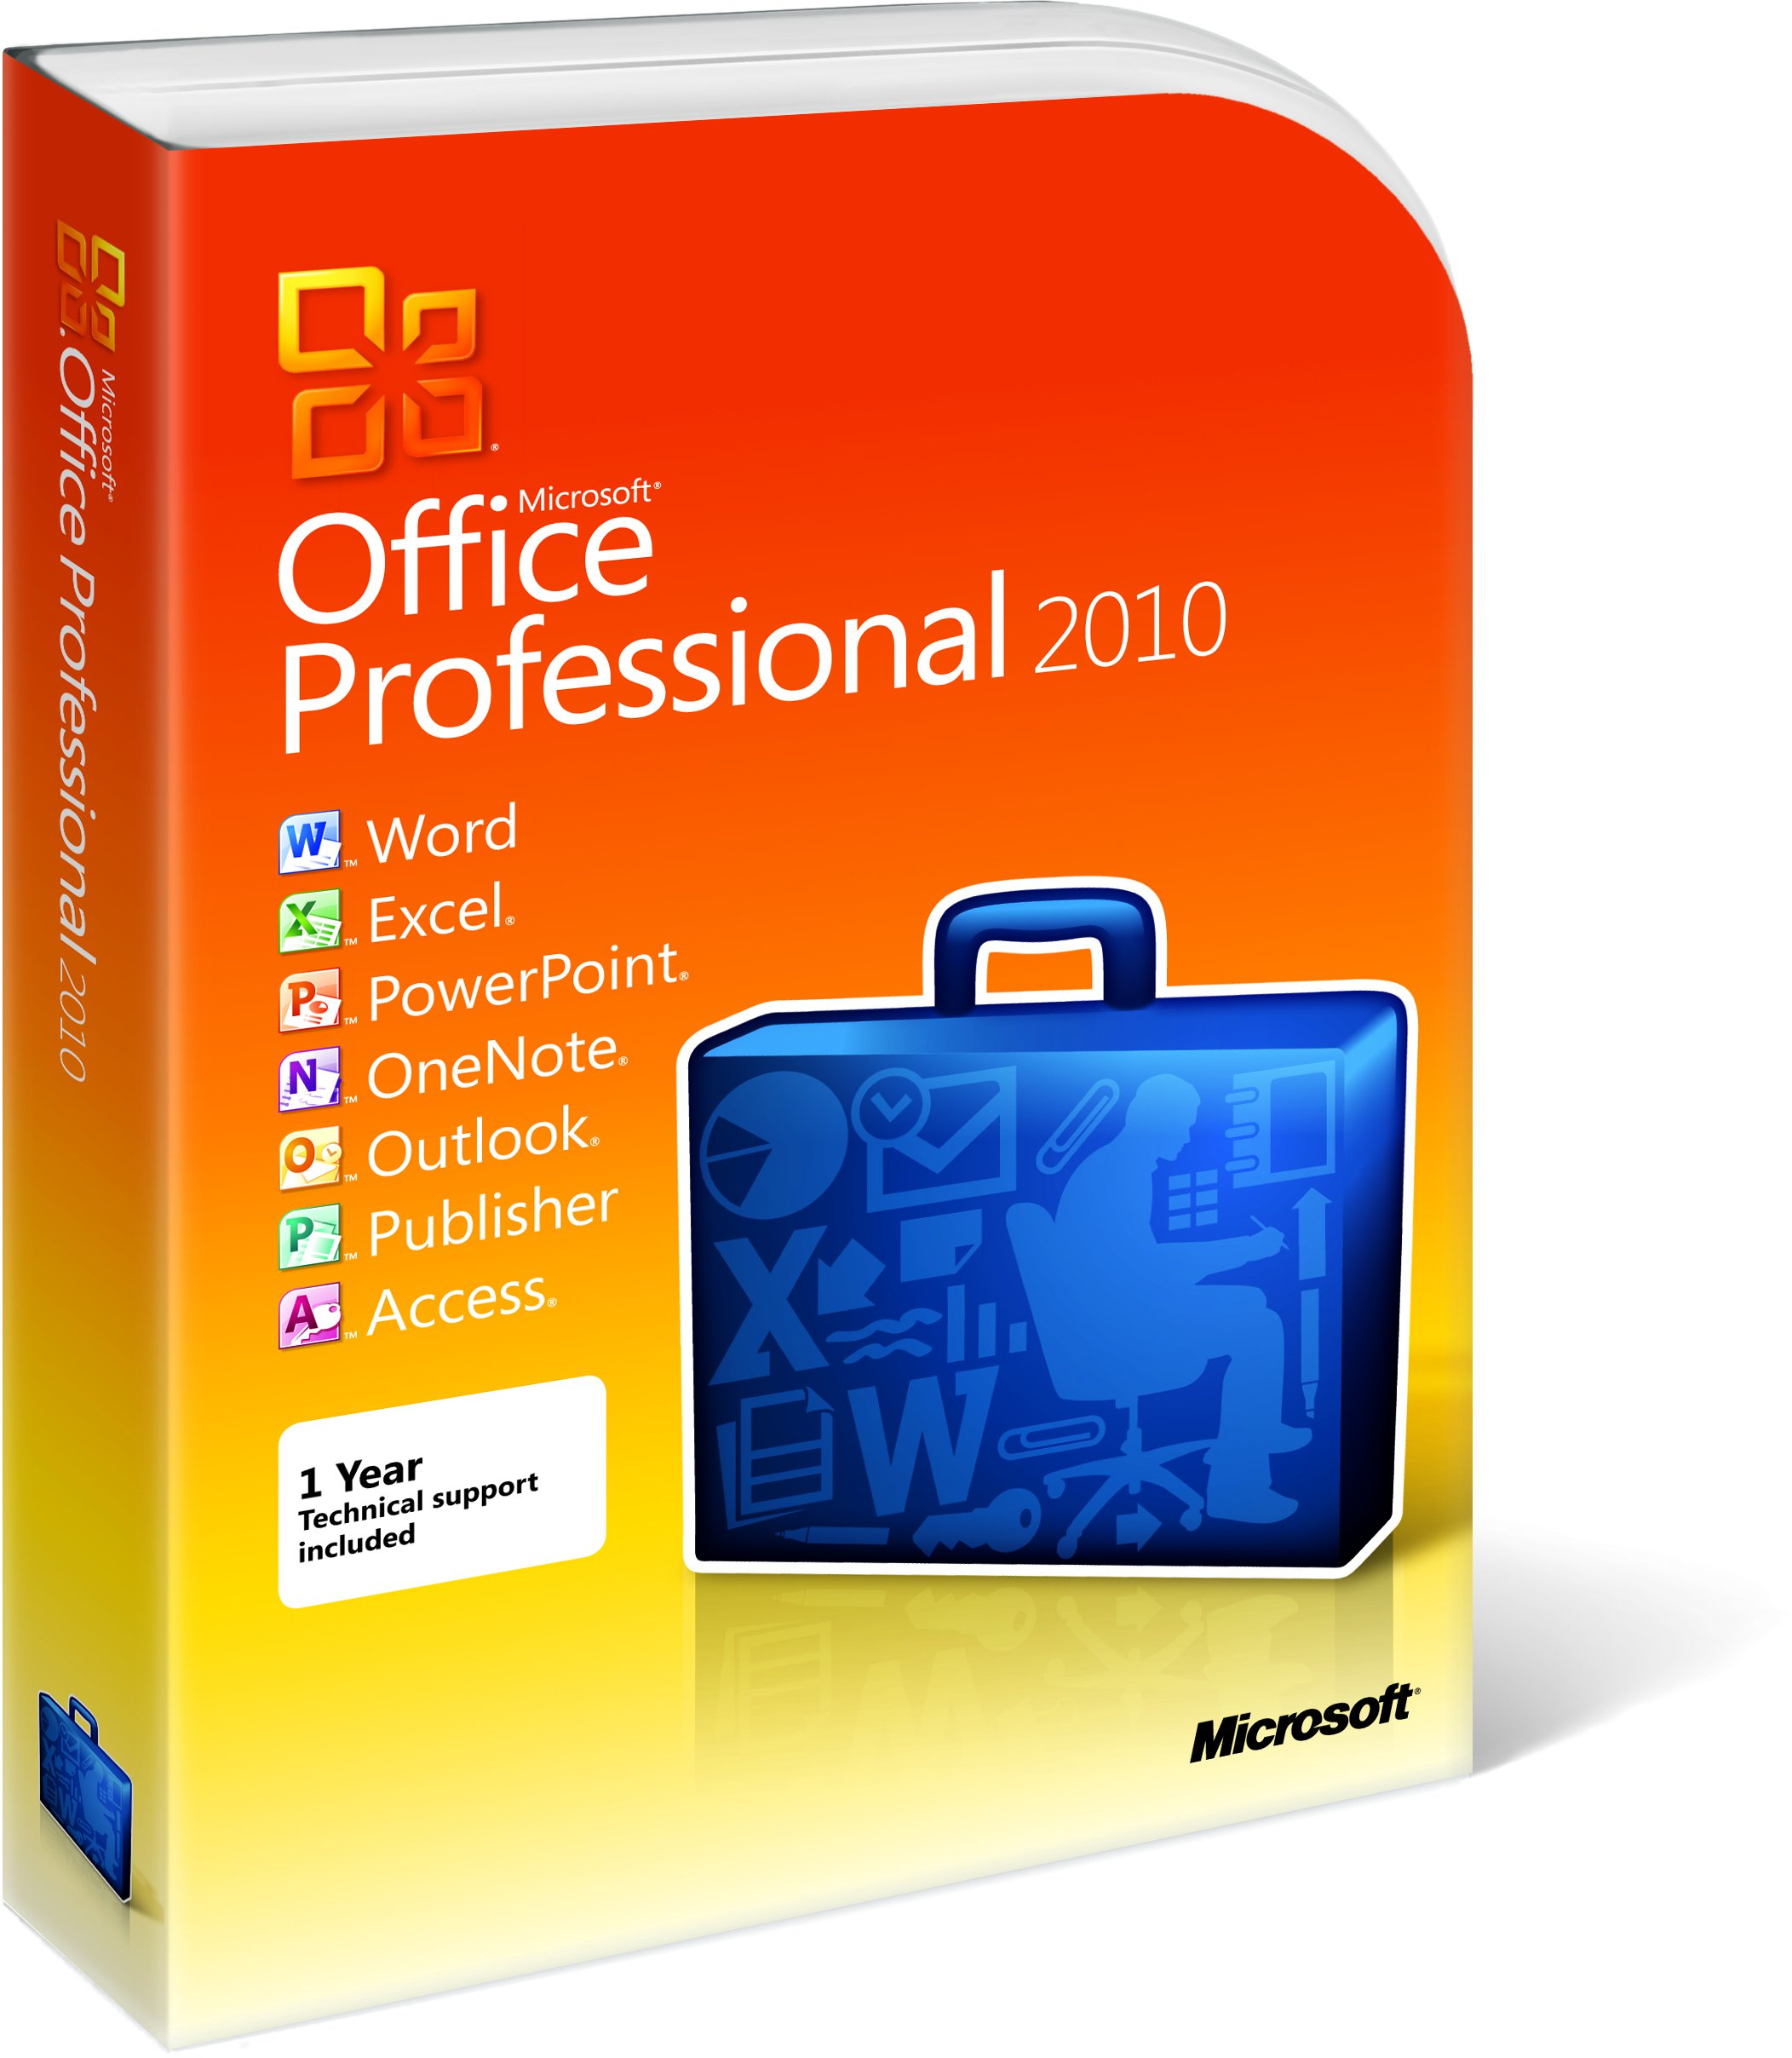 office 2010 professional plus 32 bit free download